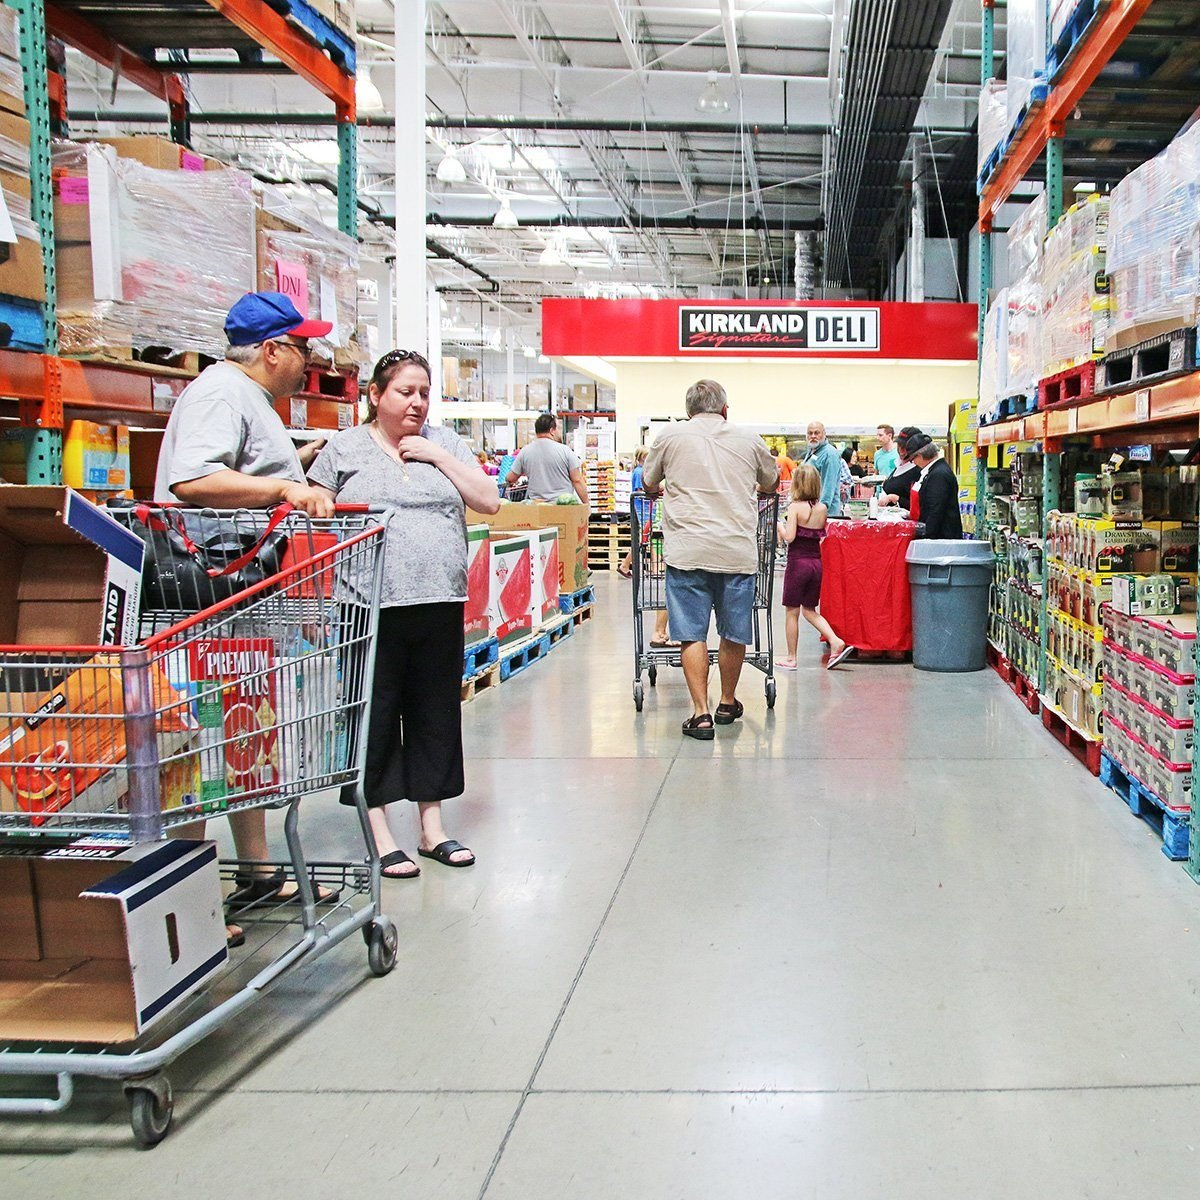 Grocery store interior